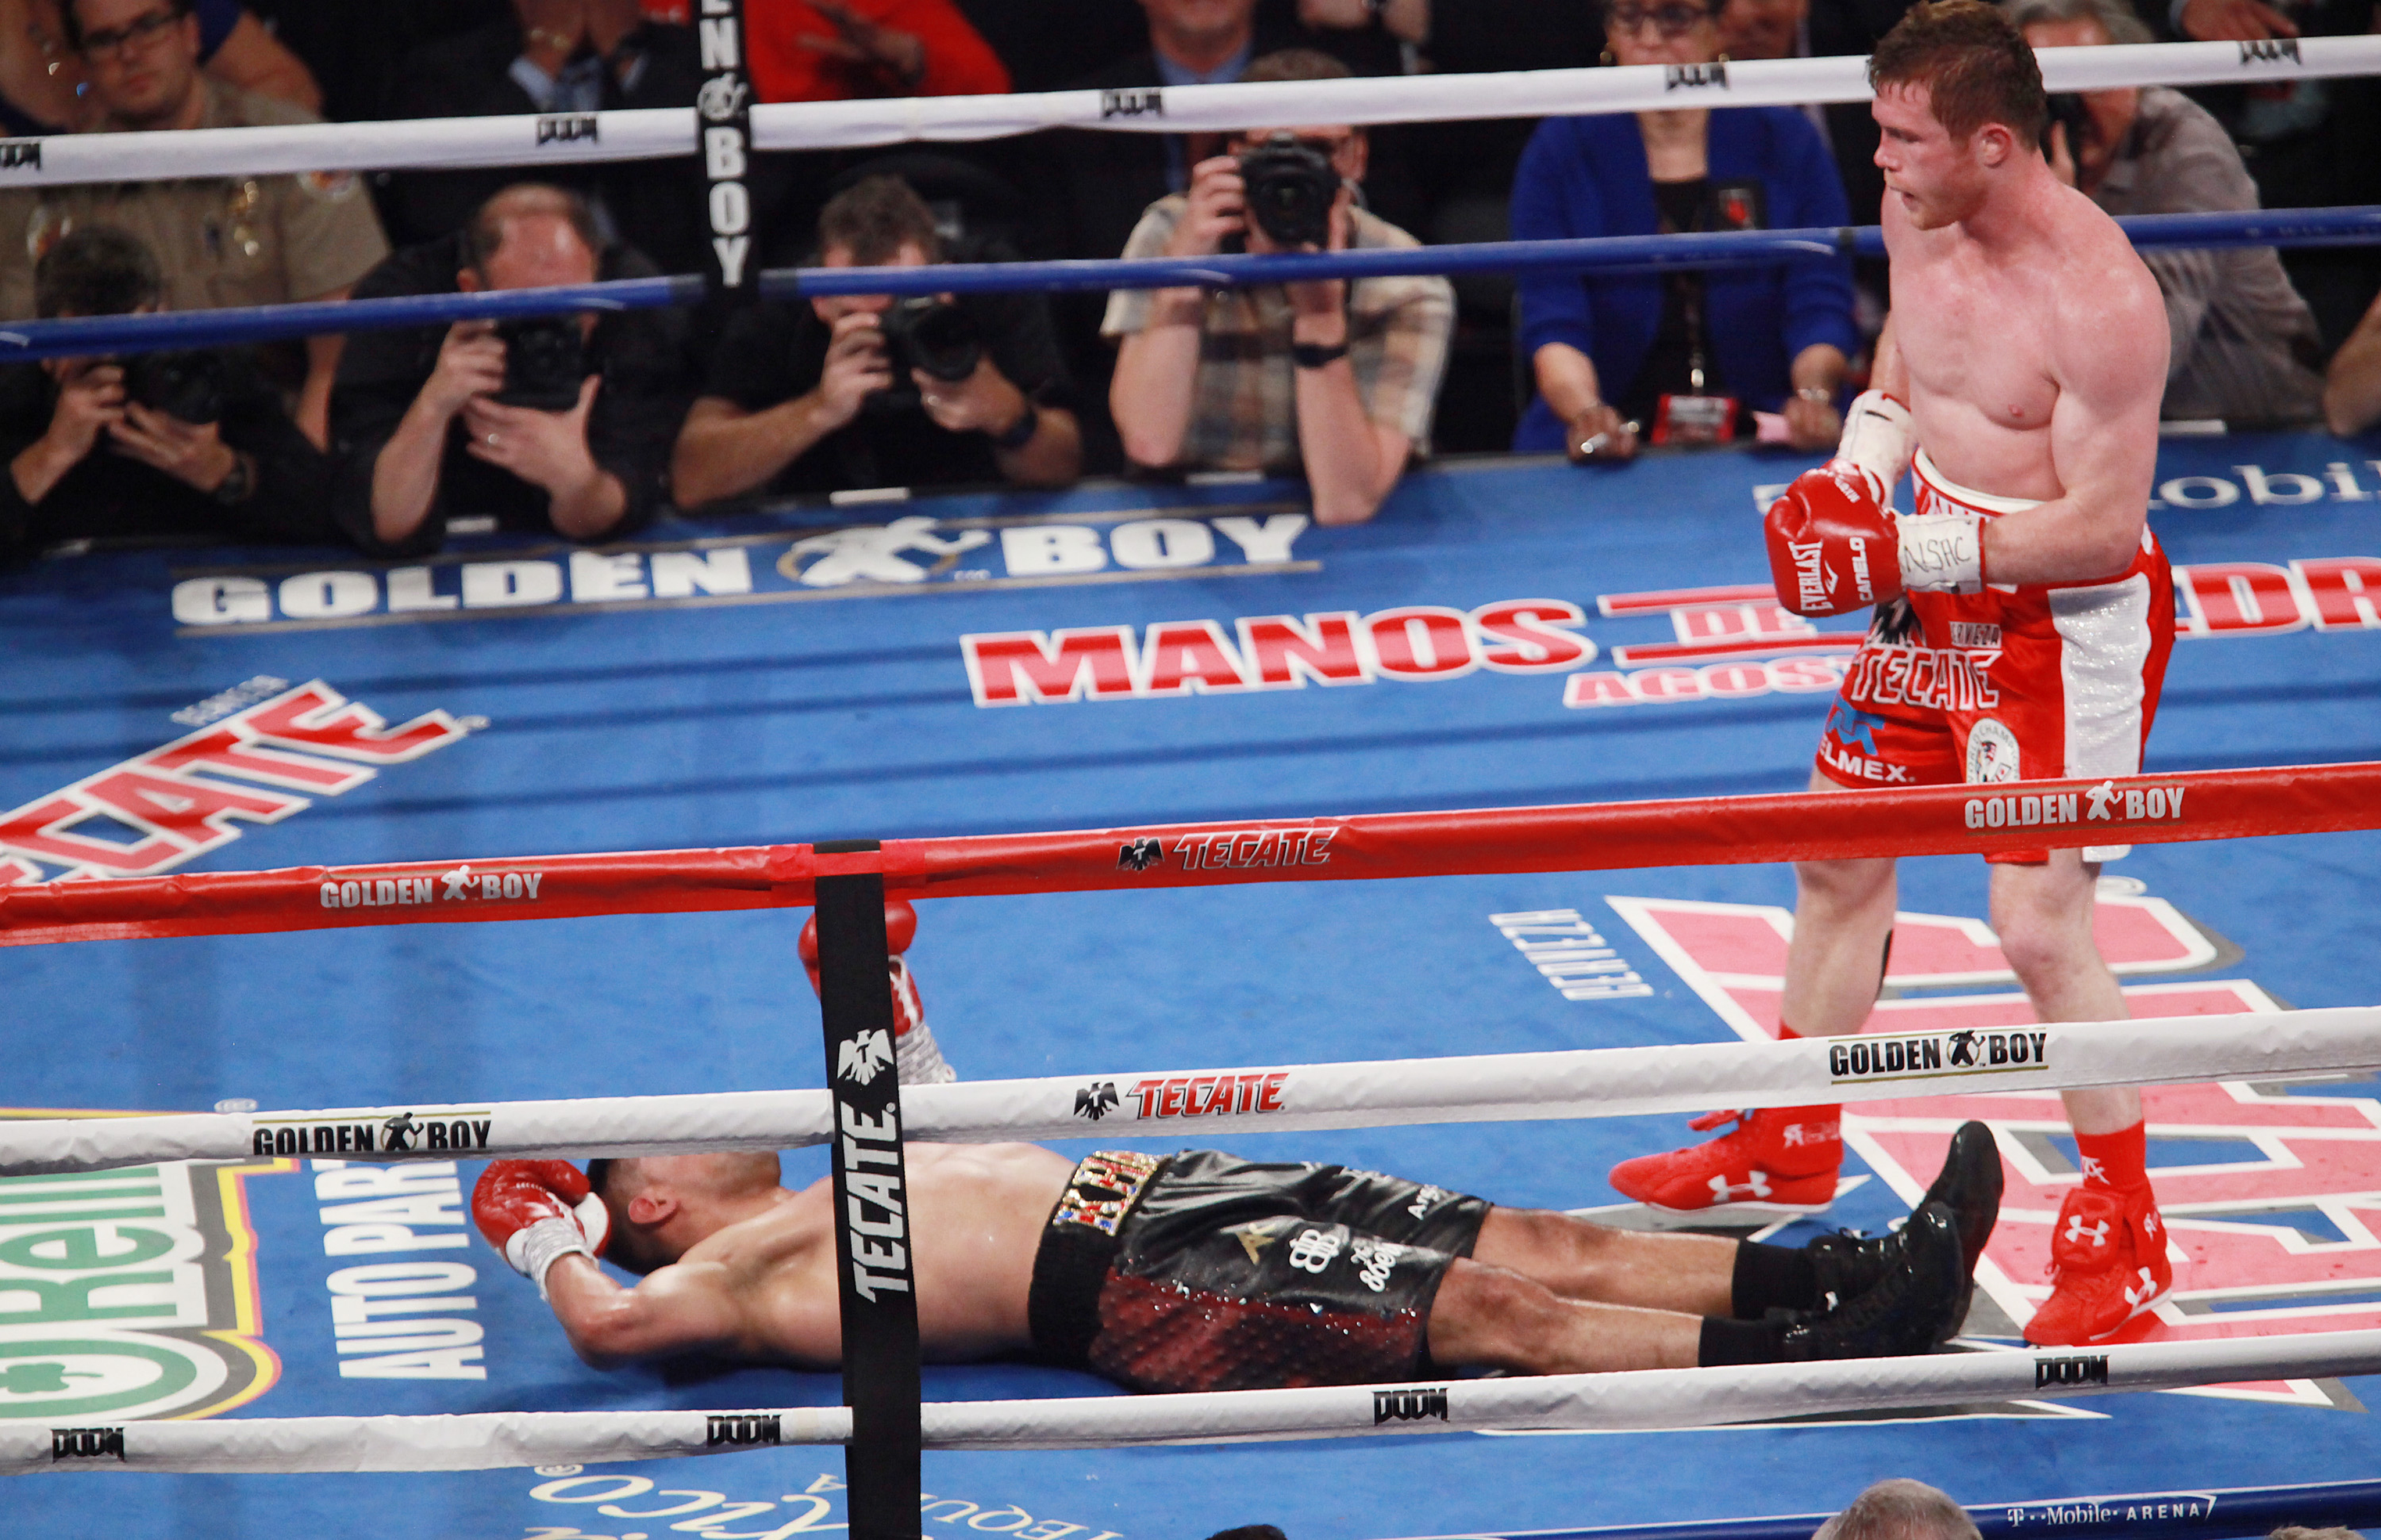 Khan's won back to back fights since the loss to Alvarez. Image: PA Images